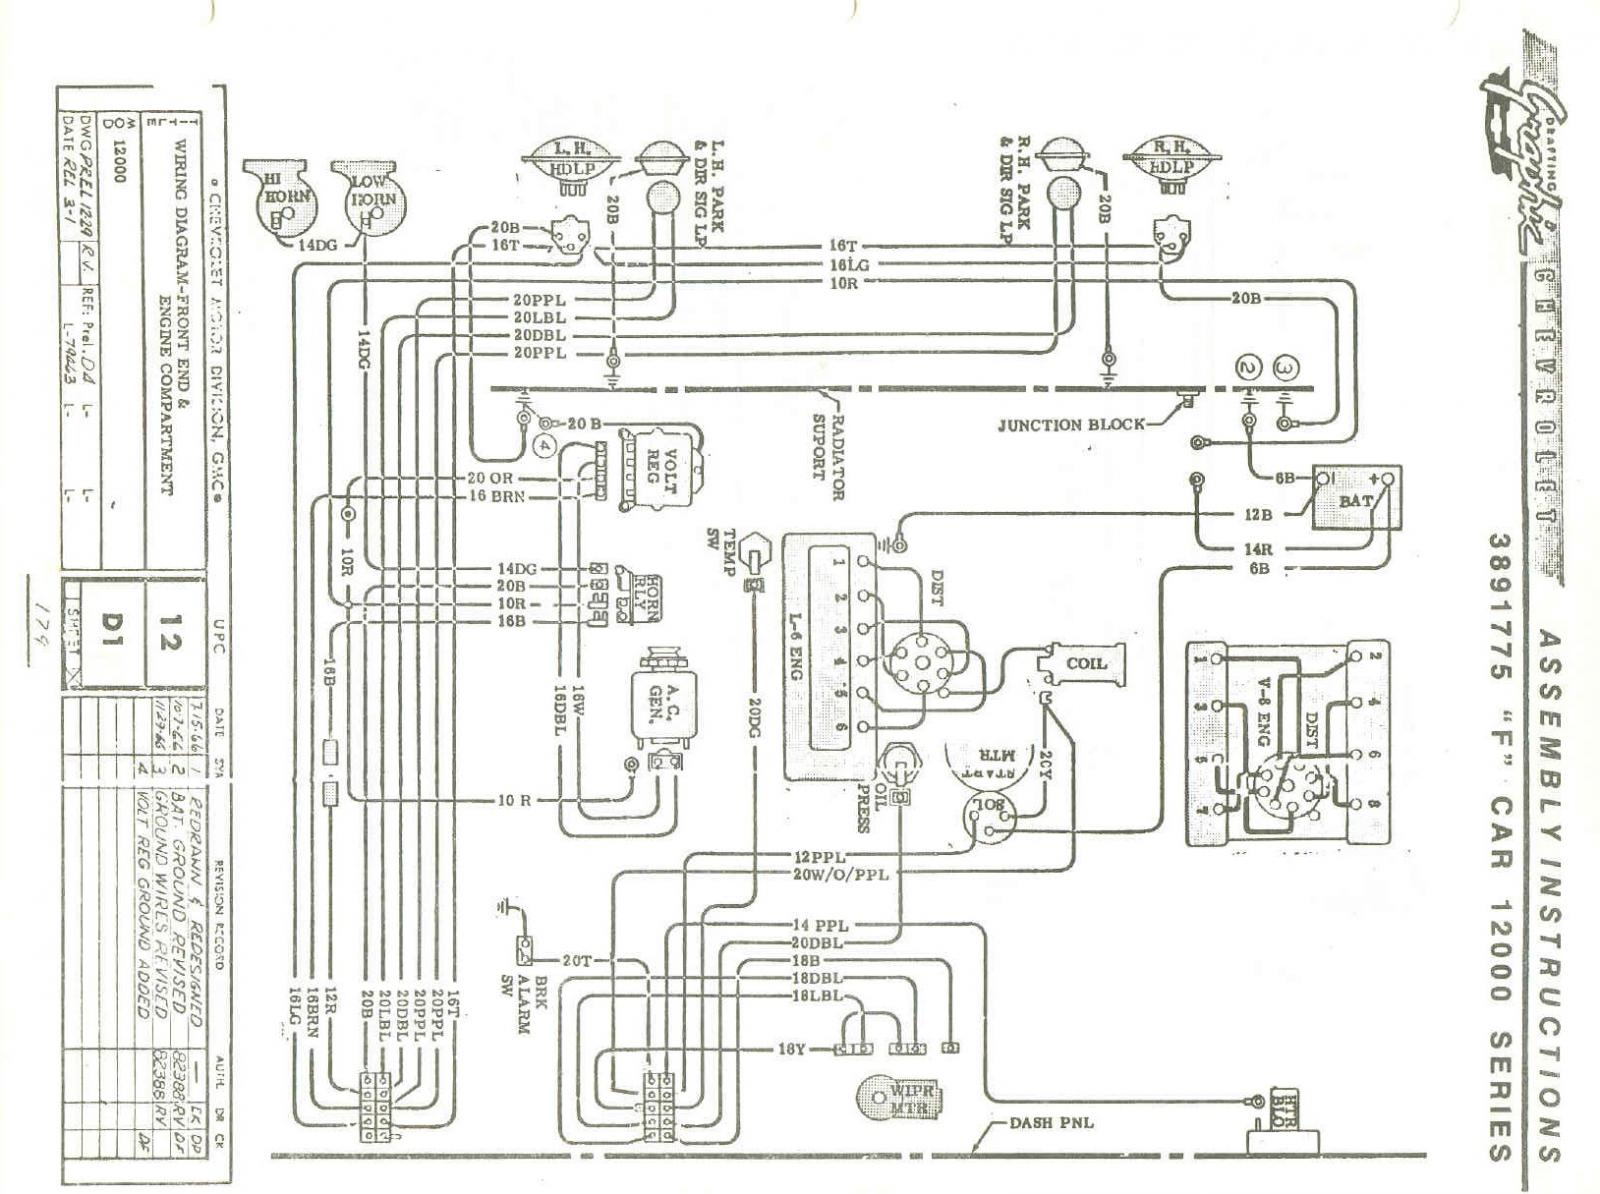 1967 camaro wiring harness diagram 1967 discover your wiring tail light wiring harness 1976 firebird